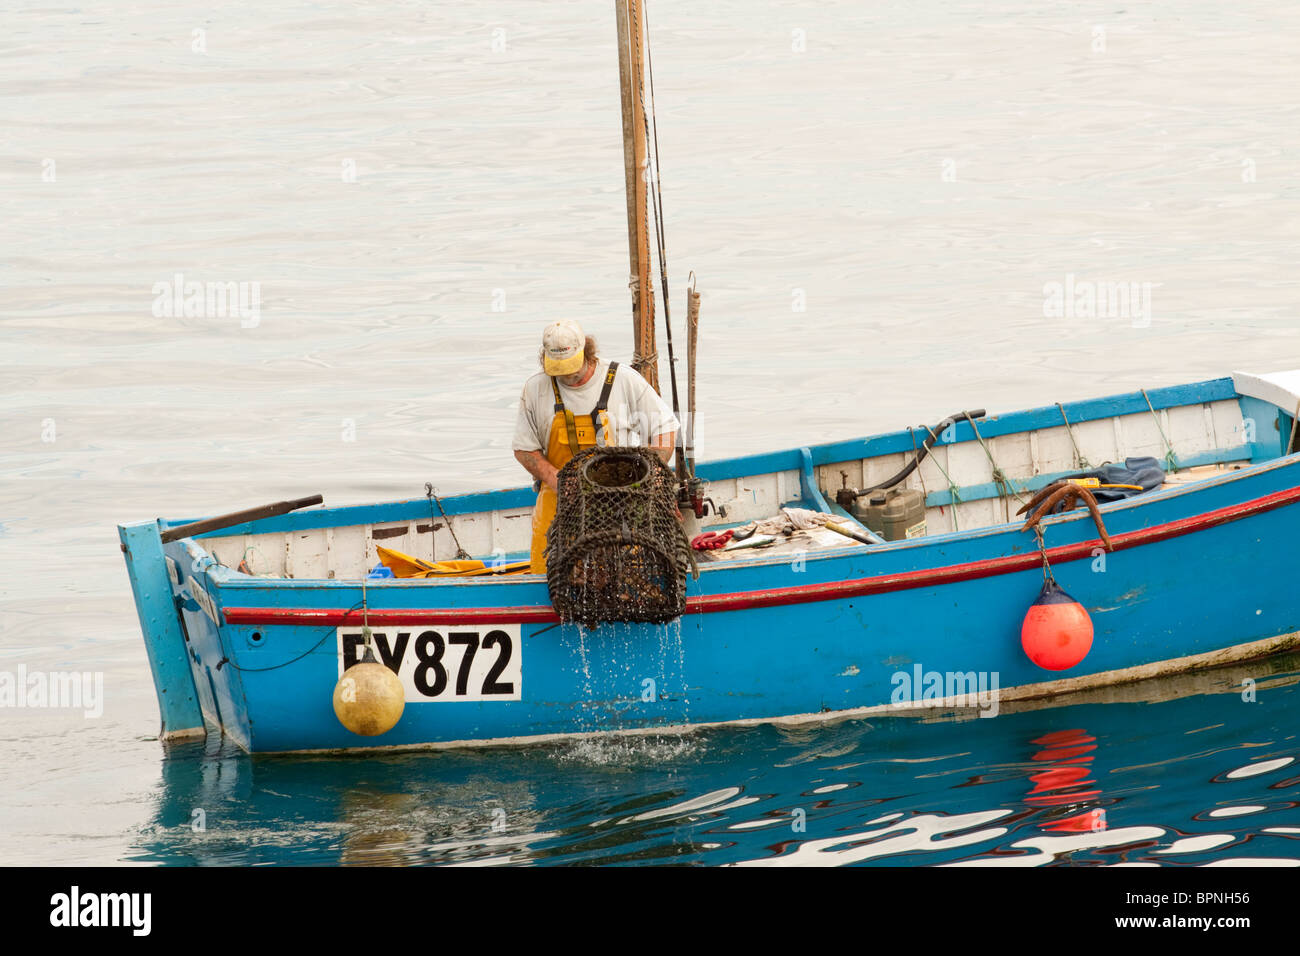 A Cornish crab fisherman on his boat pulls a crab pot/net from the sea, Cornwall, England, UK - Stock Image